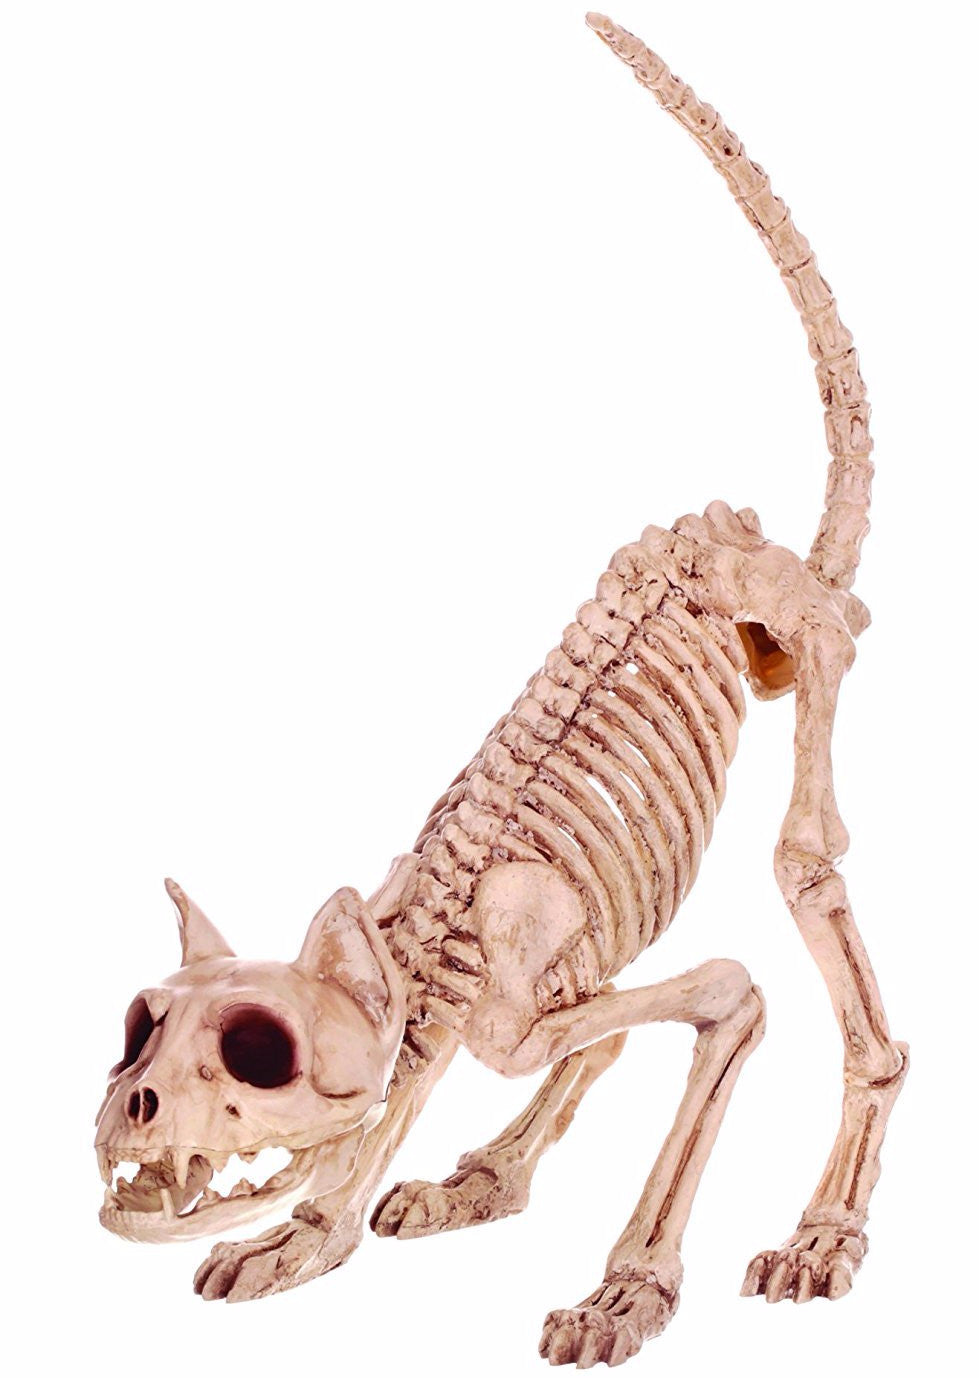 Kitty Cat Skeleton - Ready to Pounce